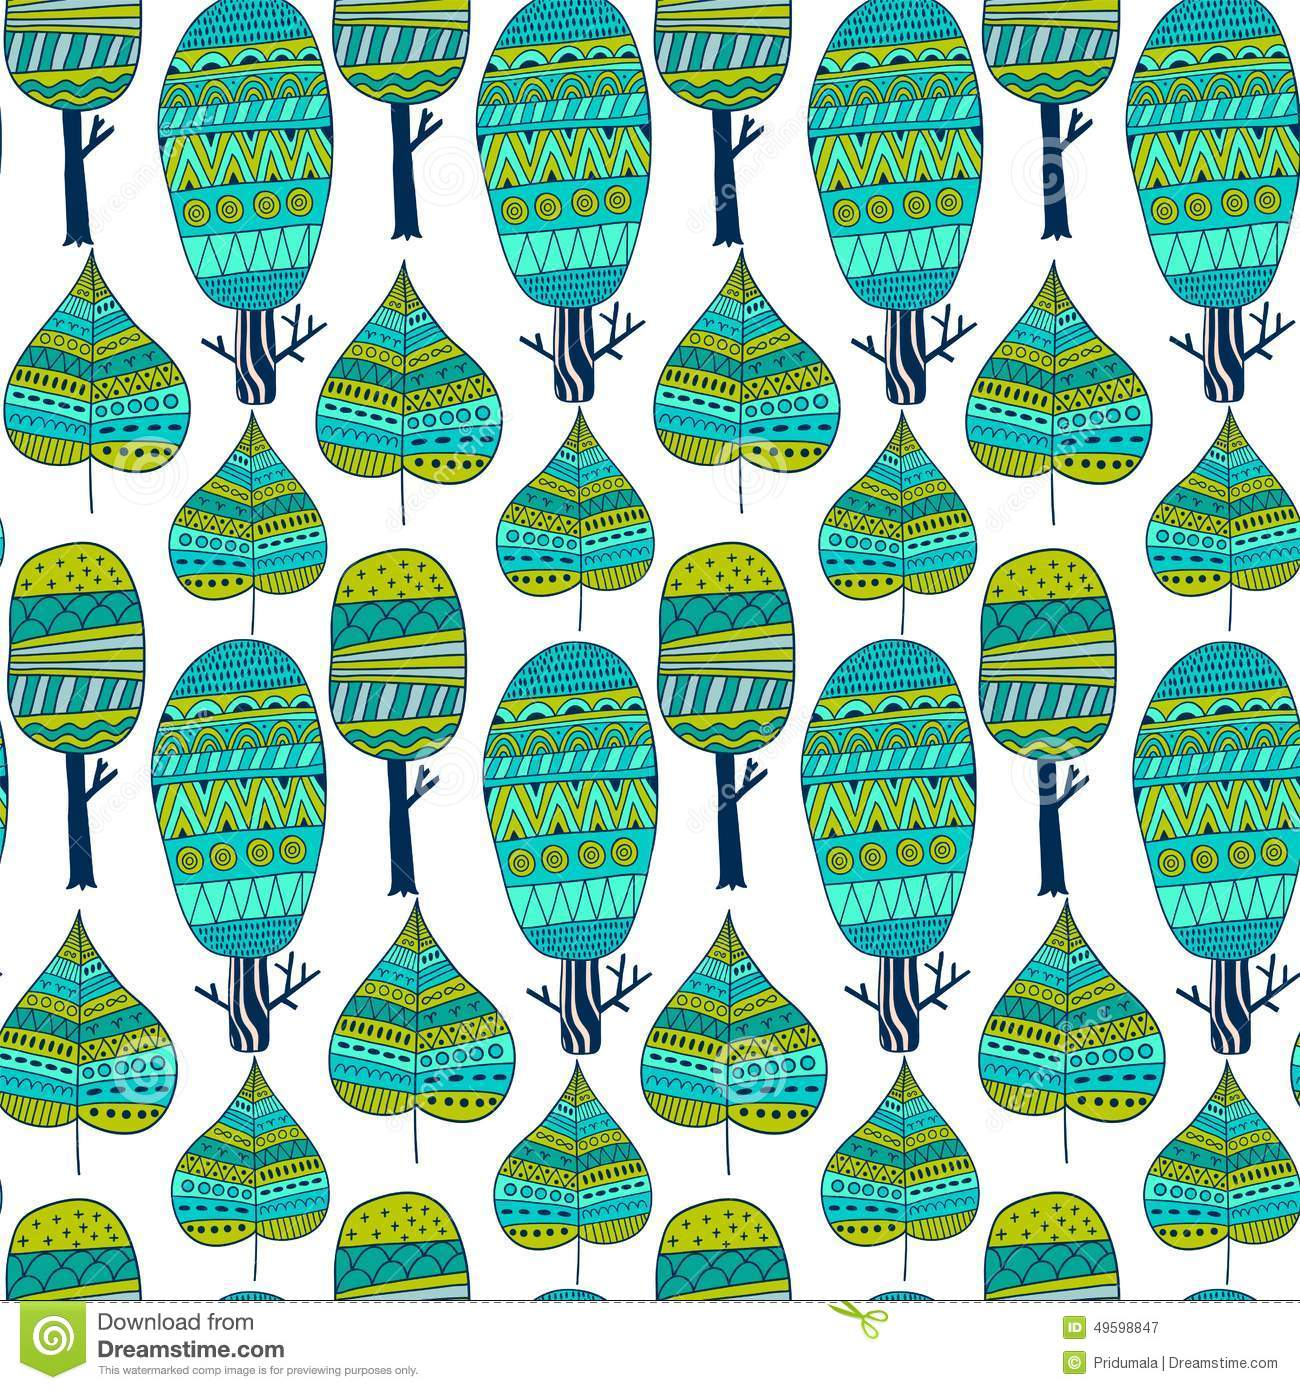 Pixel Forest Wallpaper Cute Vector Seamless Pattern Tribal Leaf And Trees Tribal